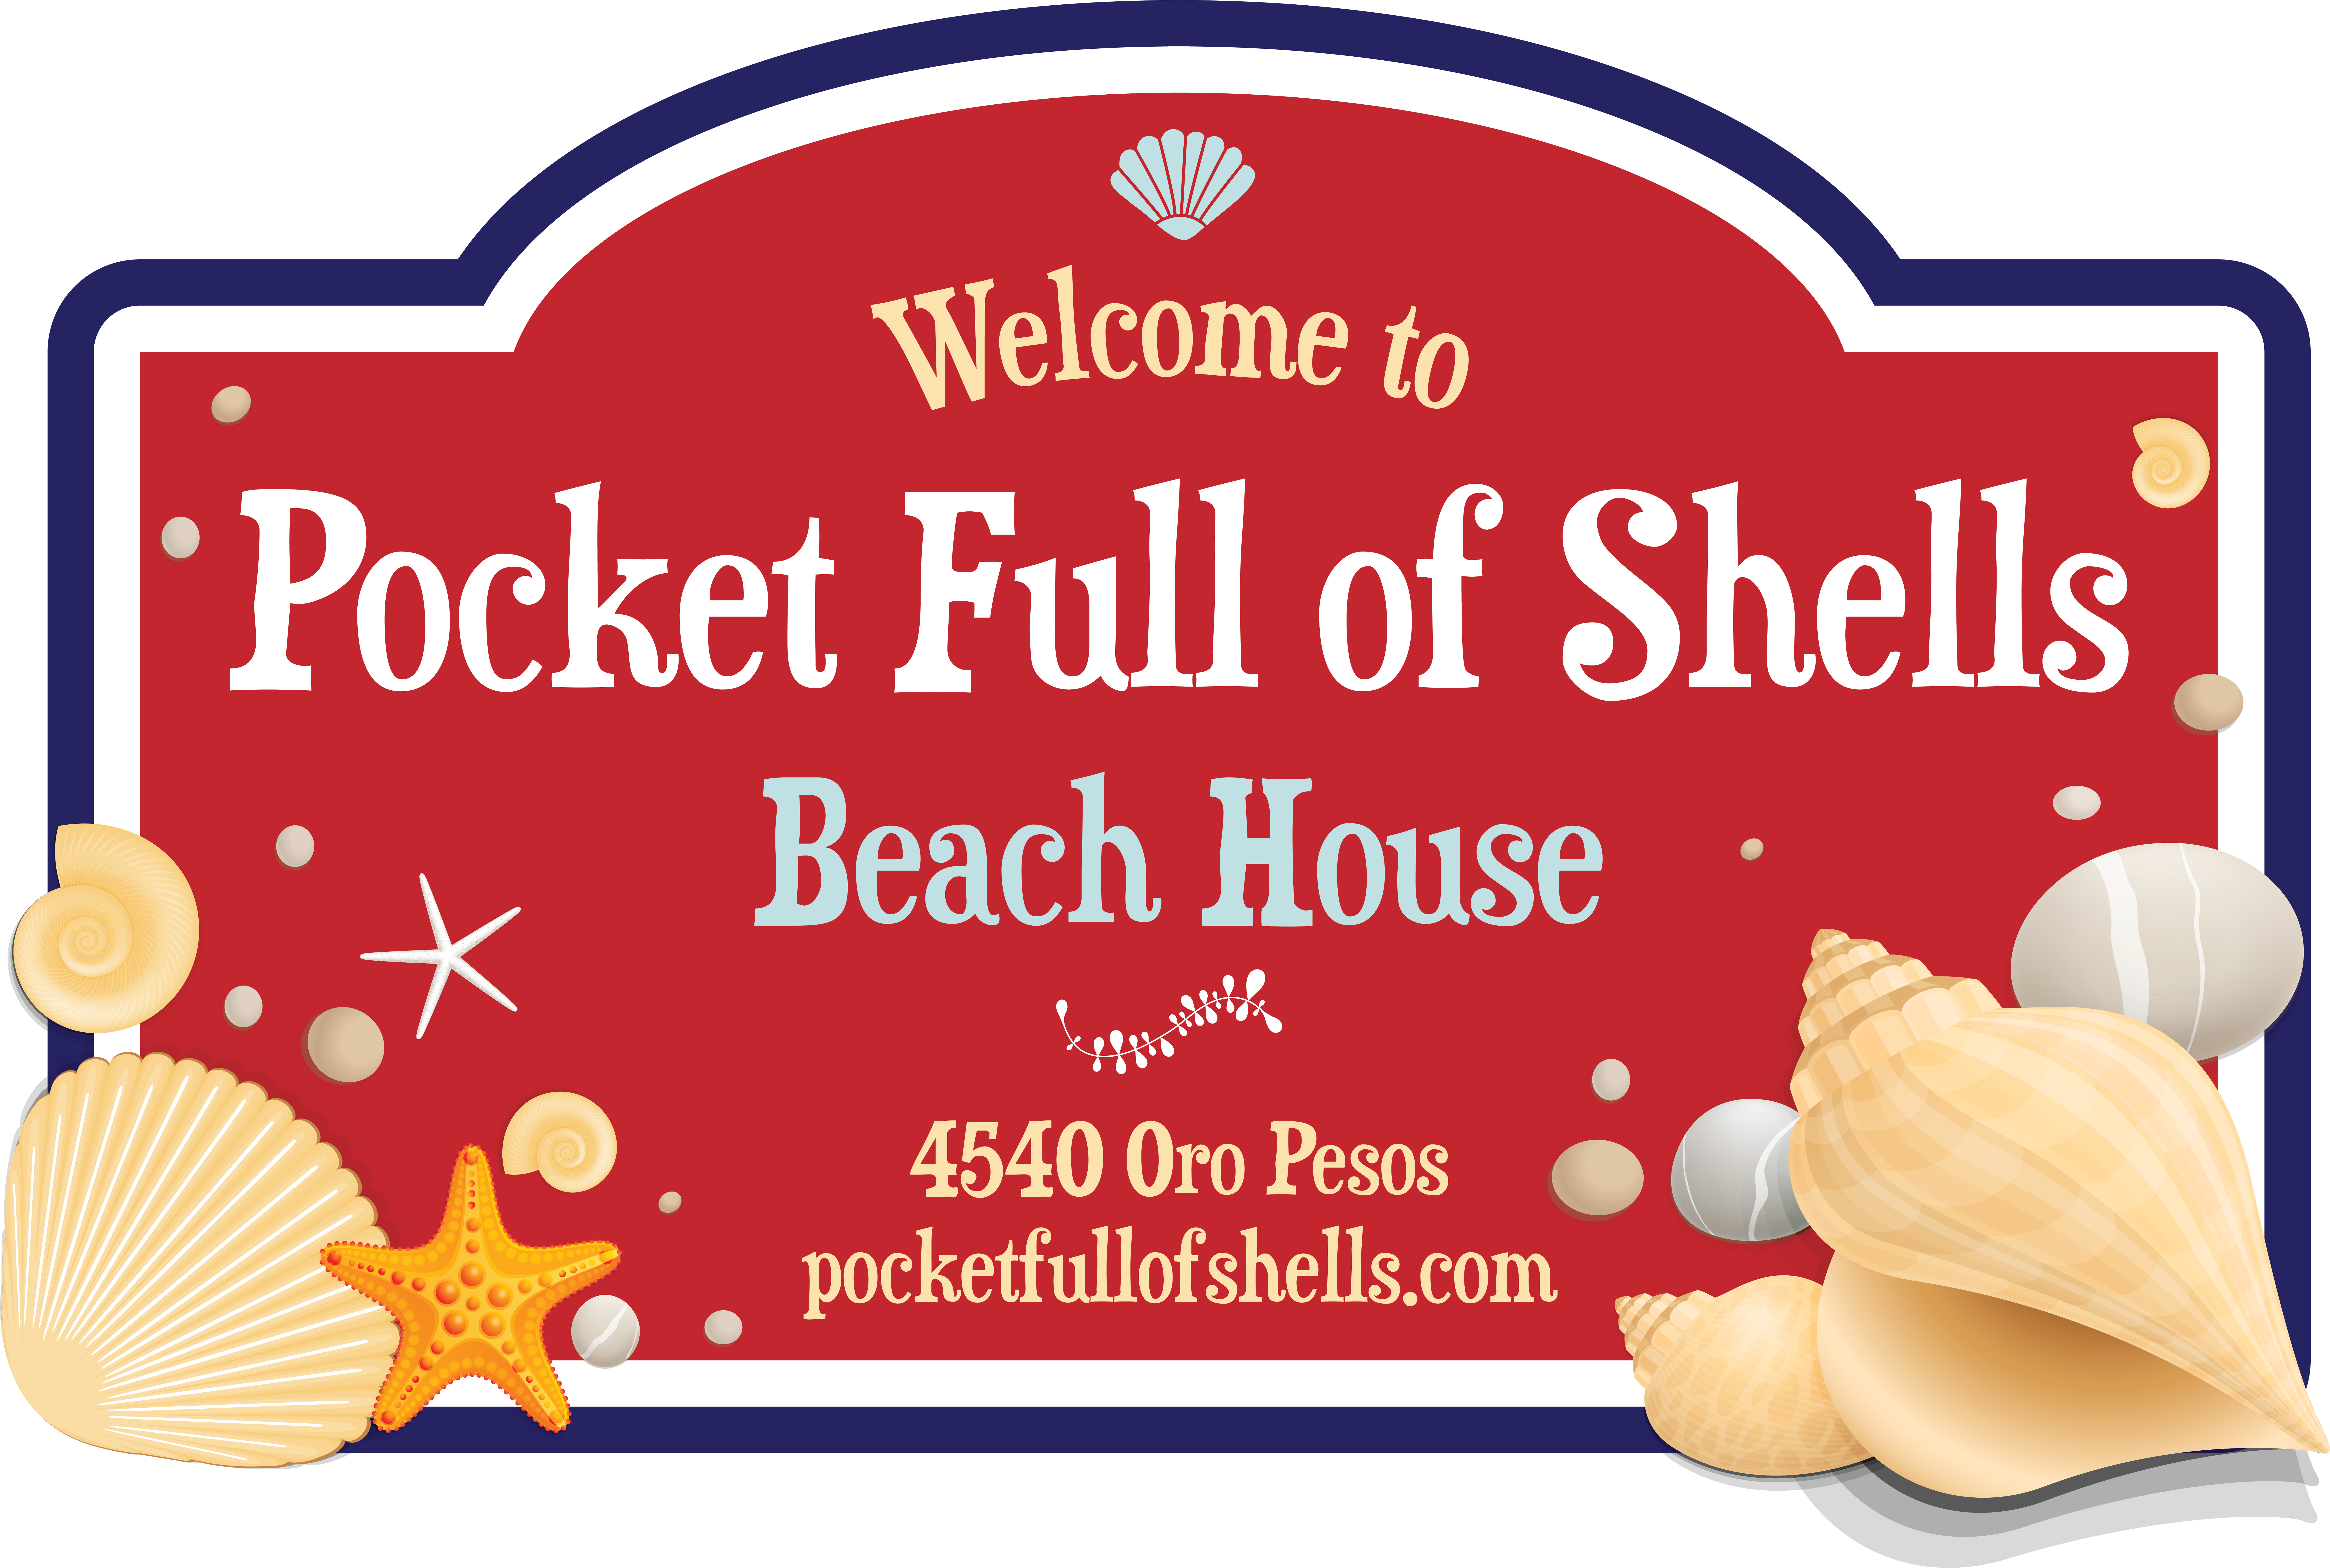 pocket-full-of-shells-beach-house